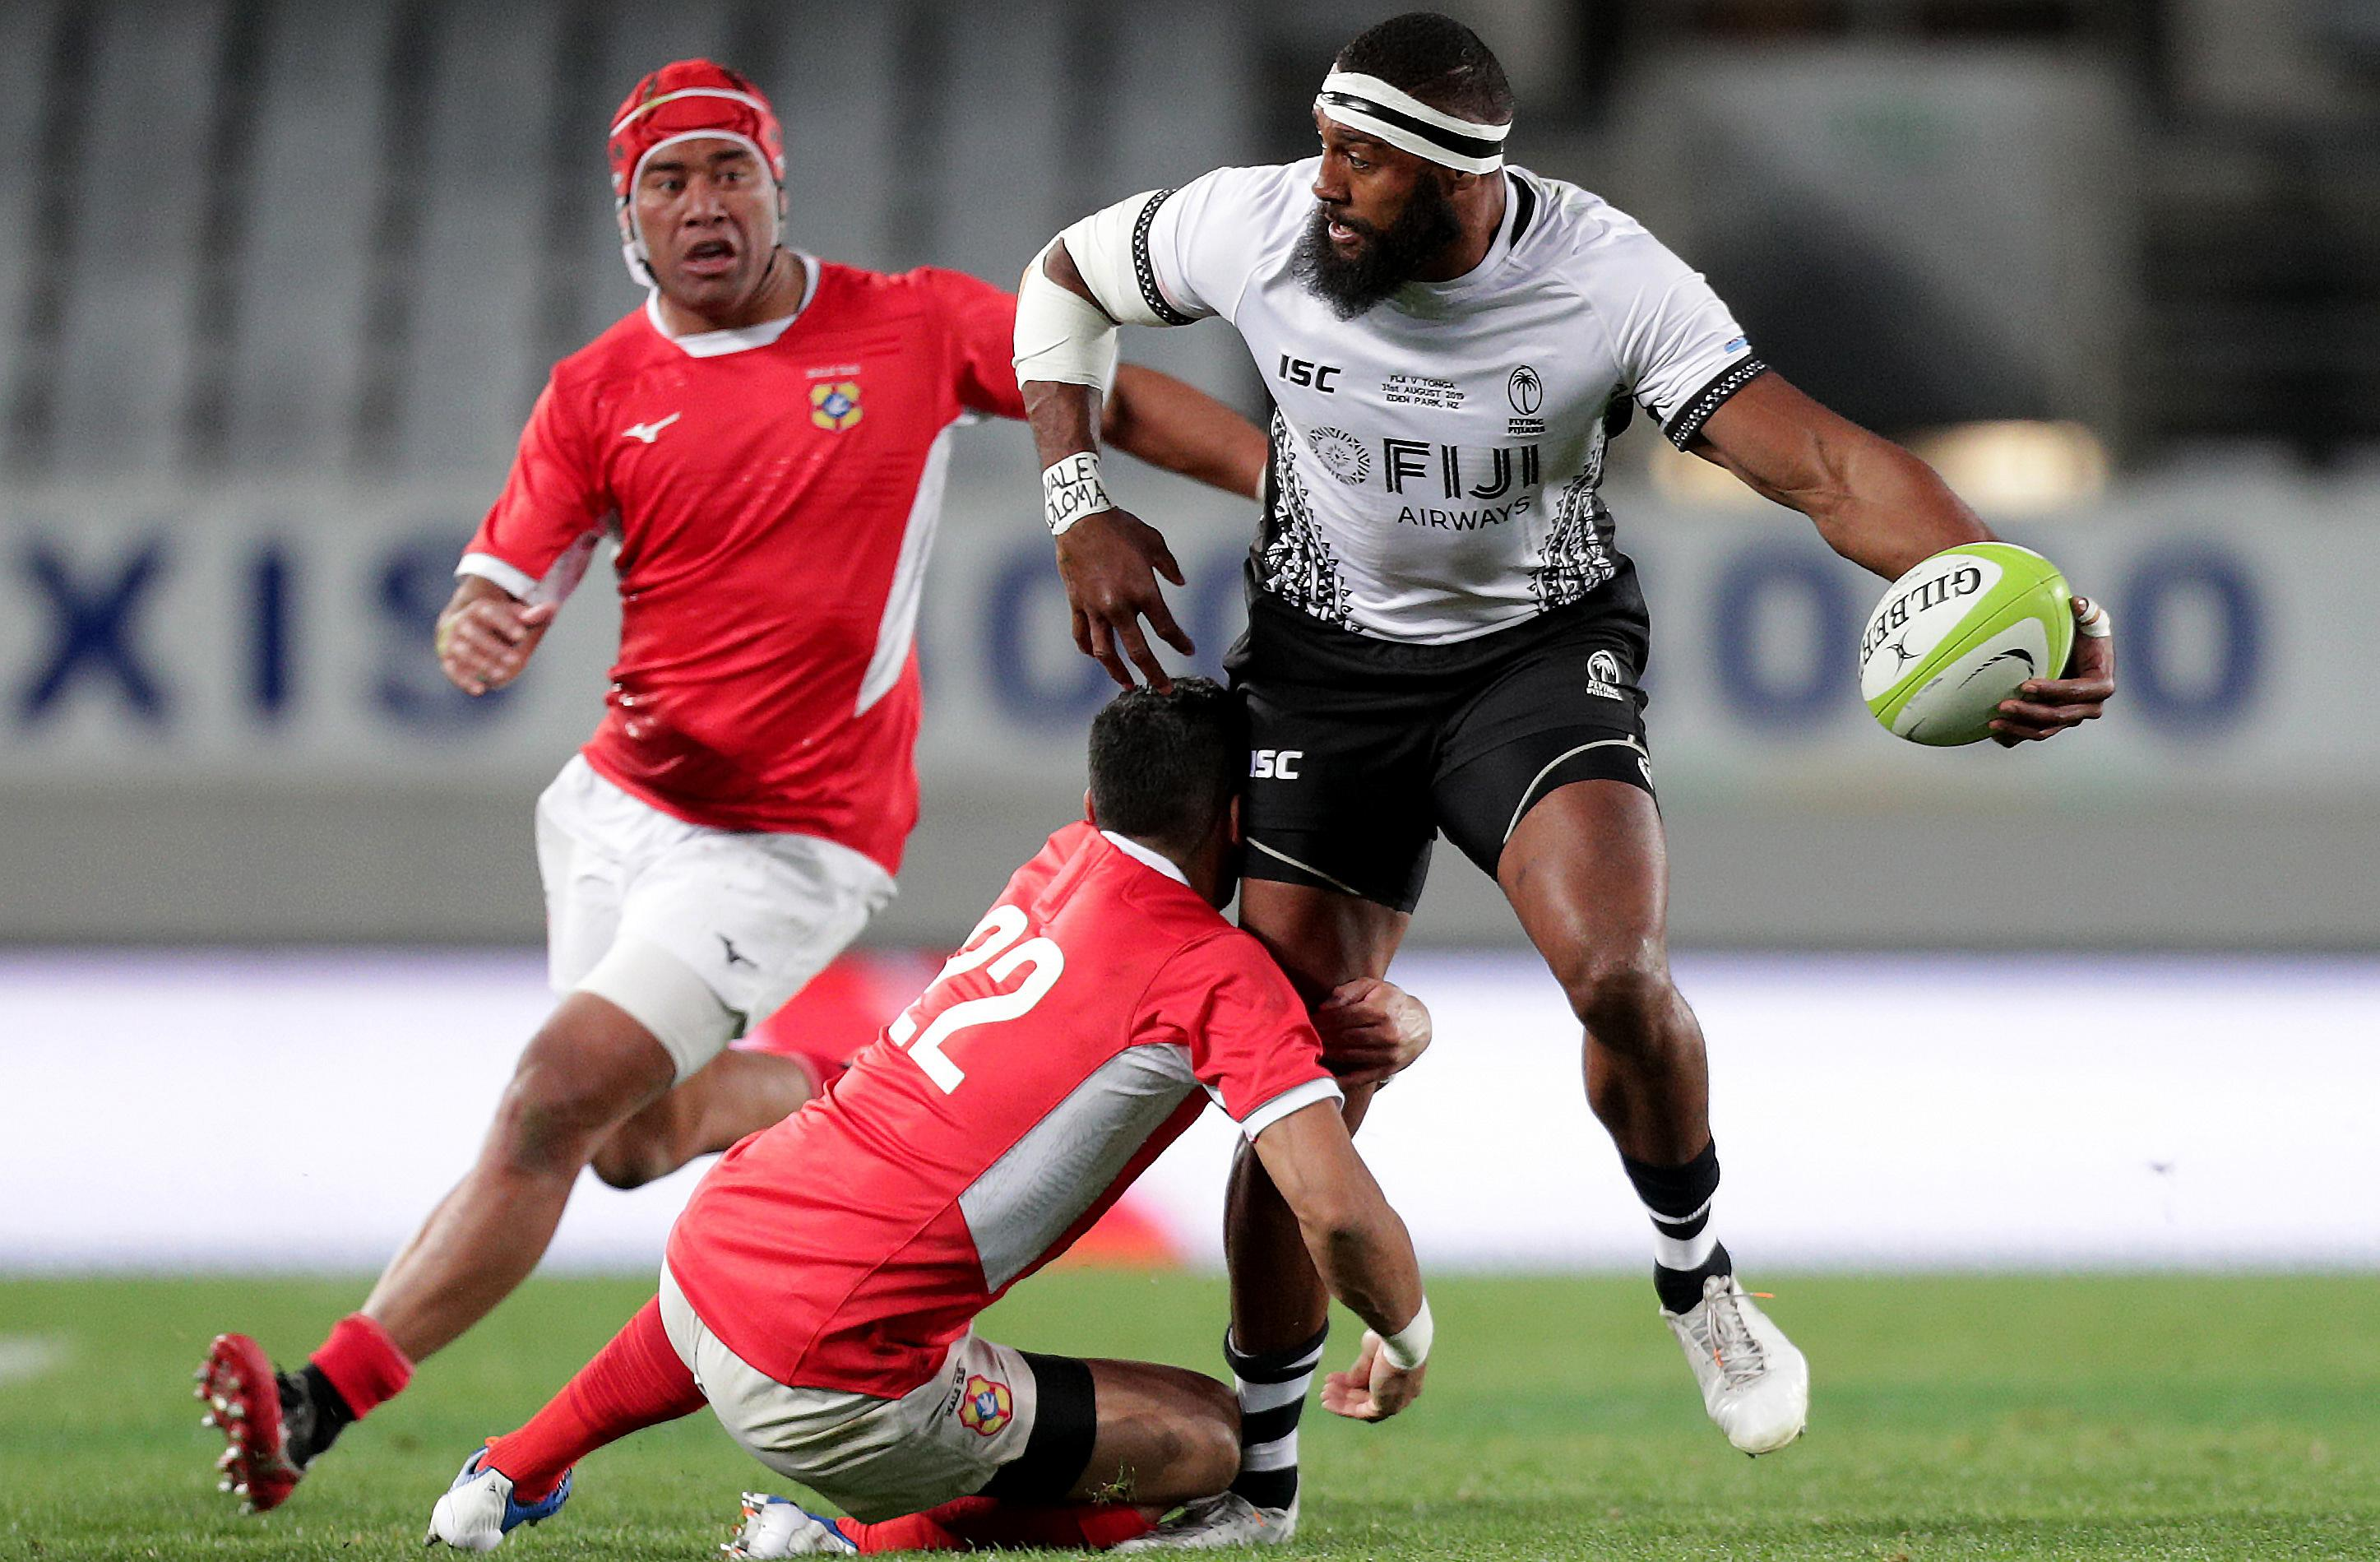 Fiji pose World Cup threat but Pacific Islands need a much fairer deal